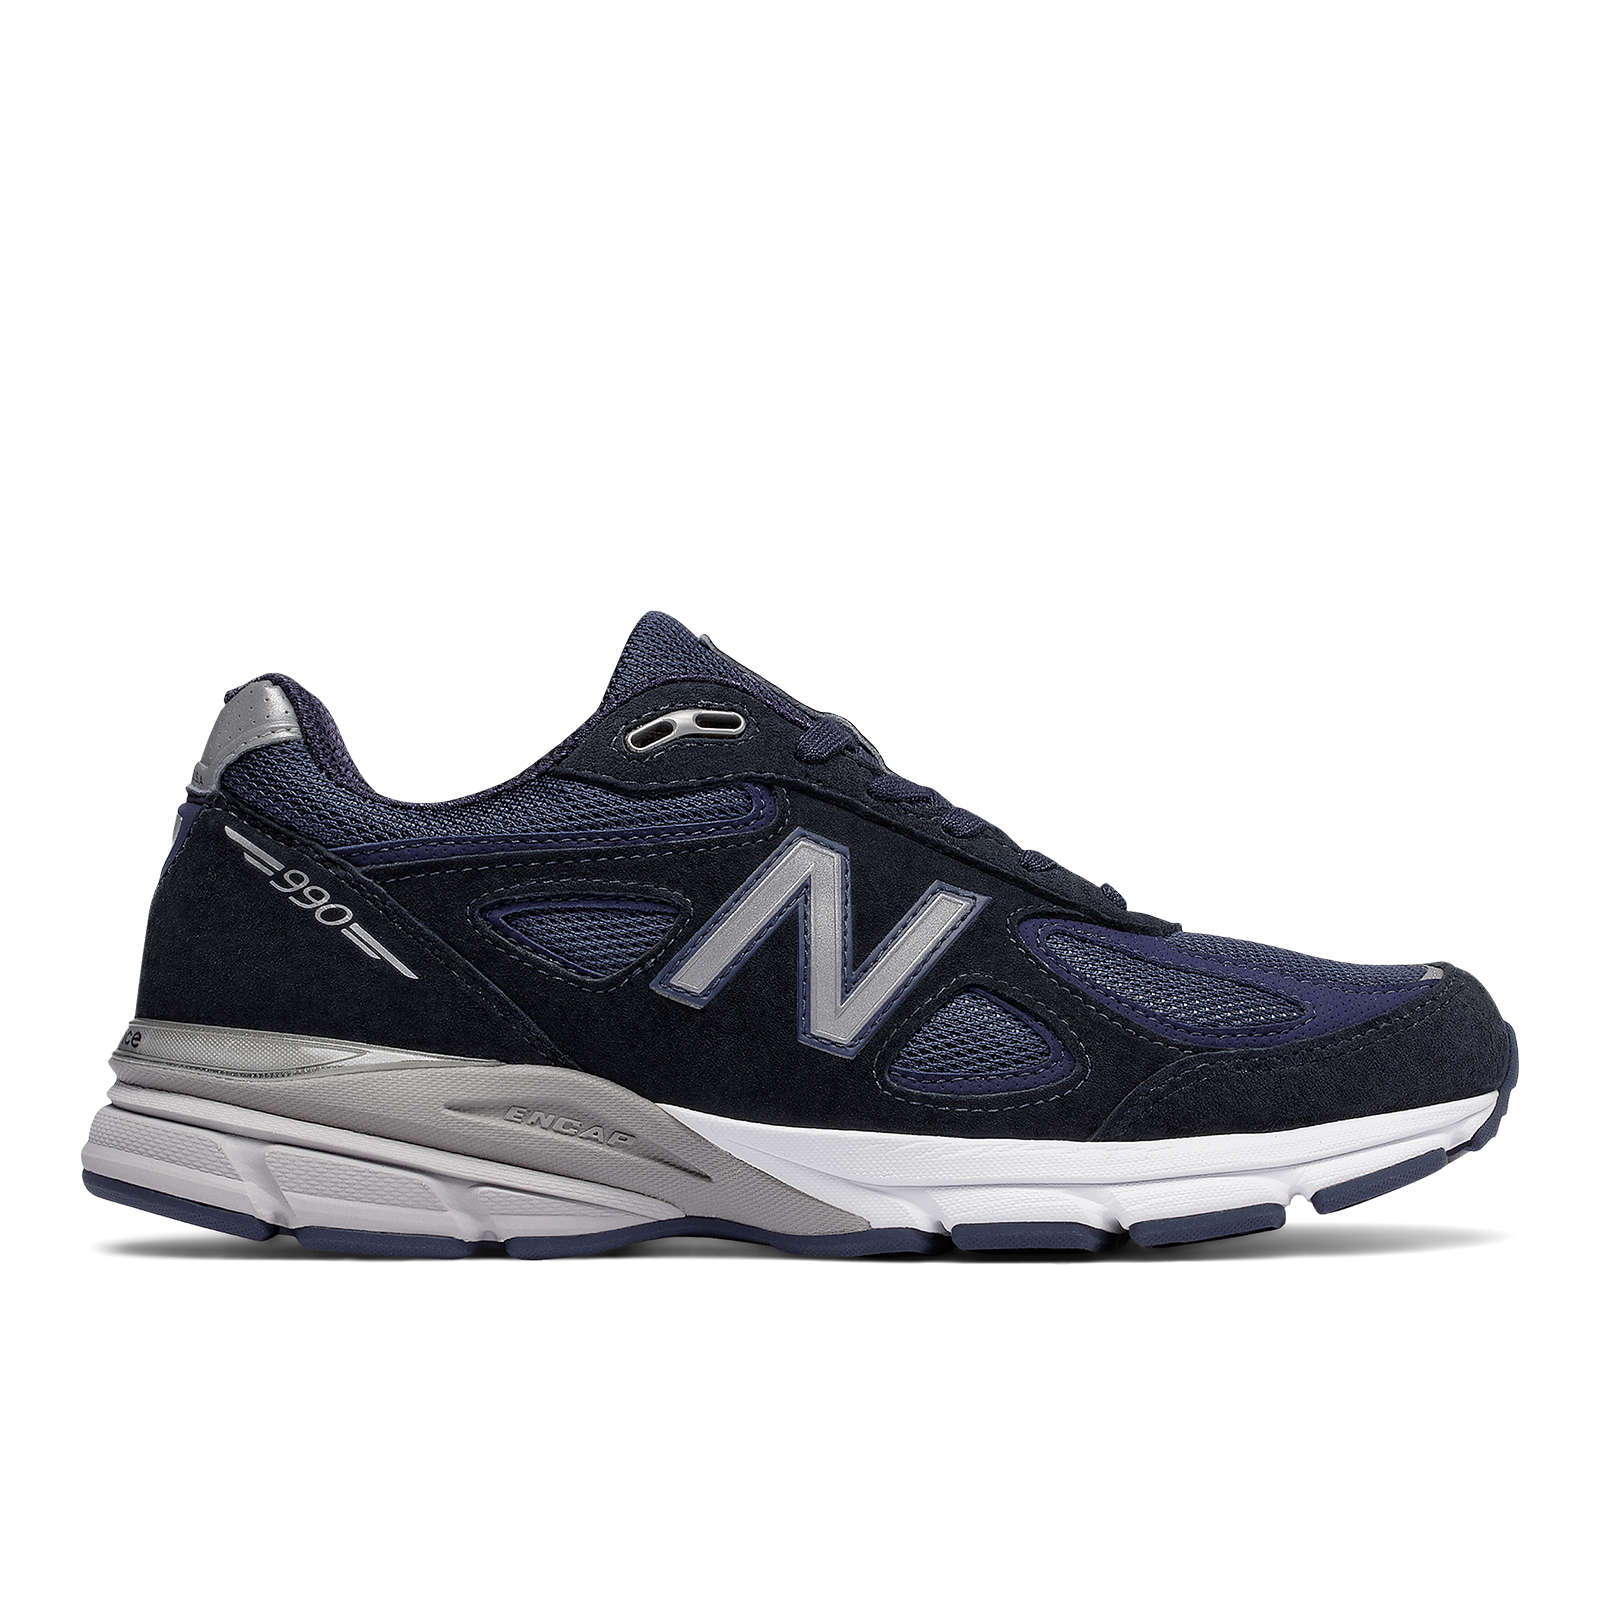 Running Shoes Brentwood